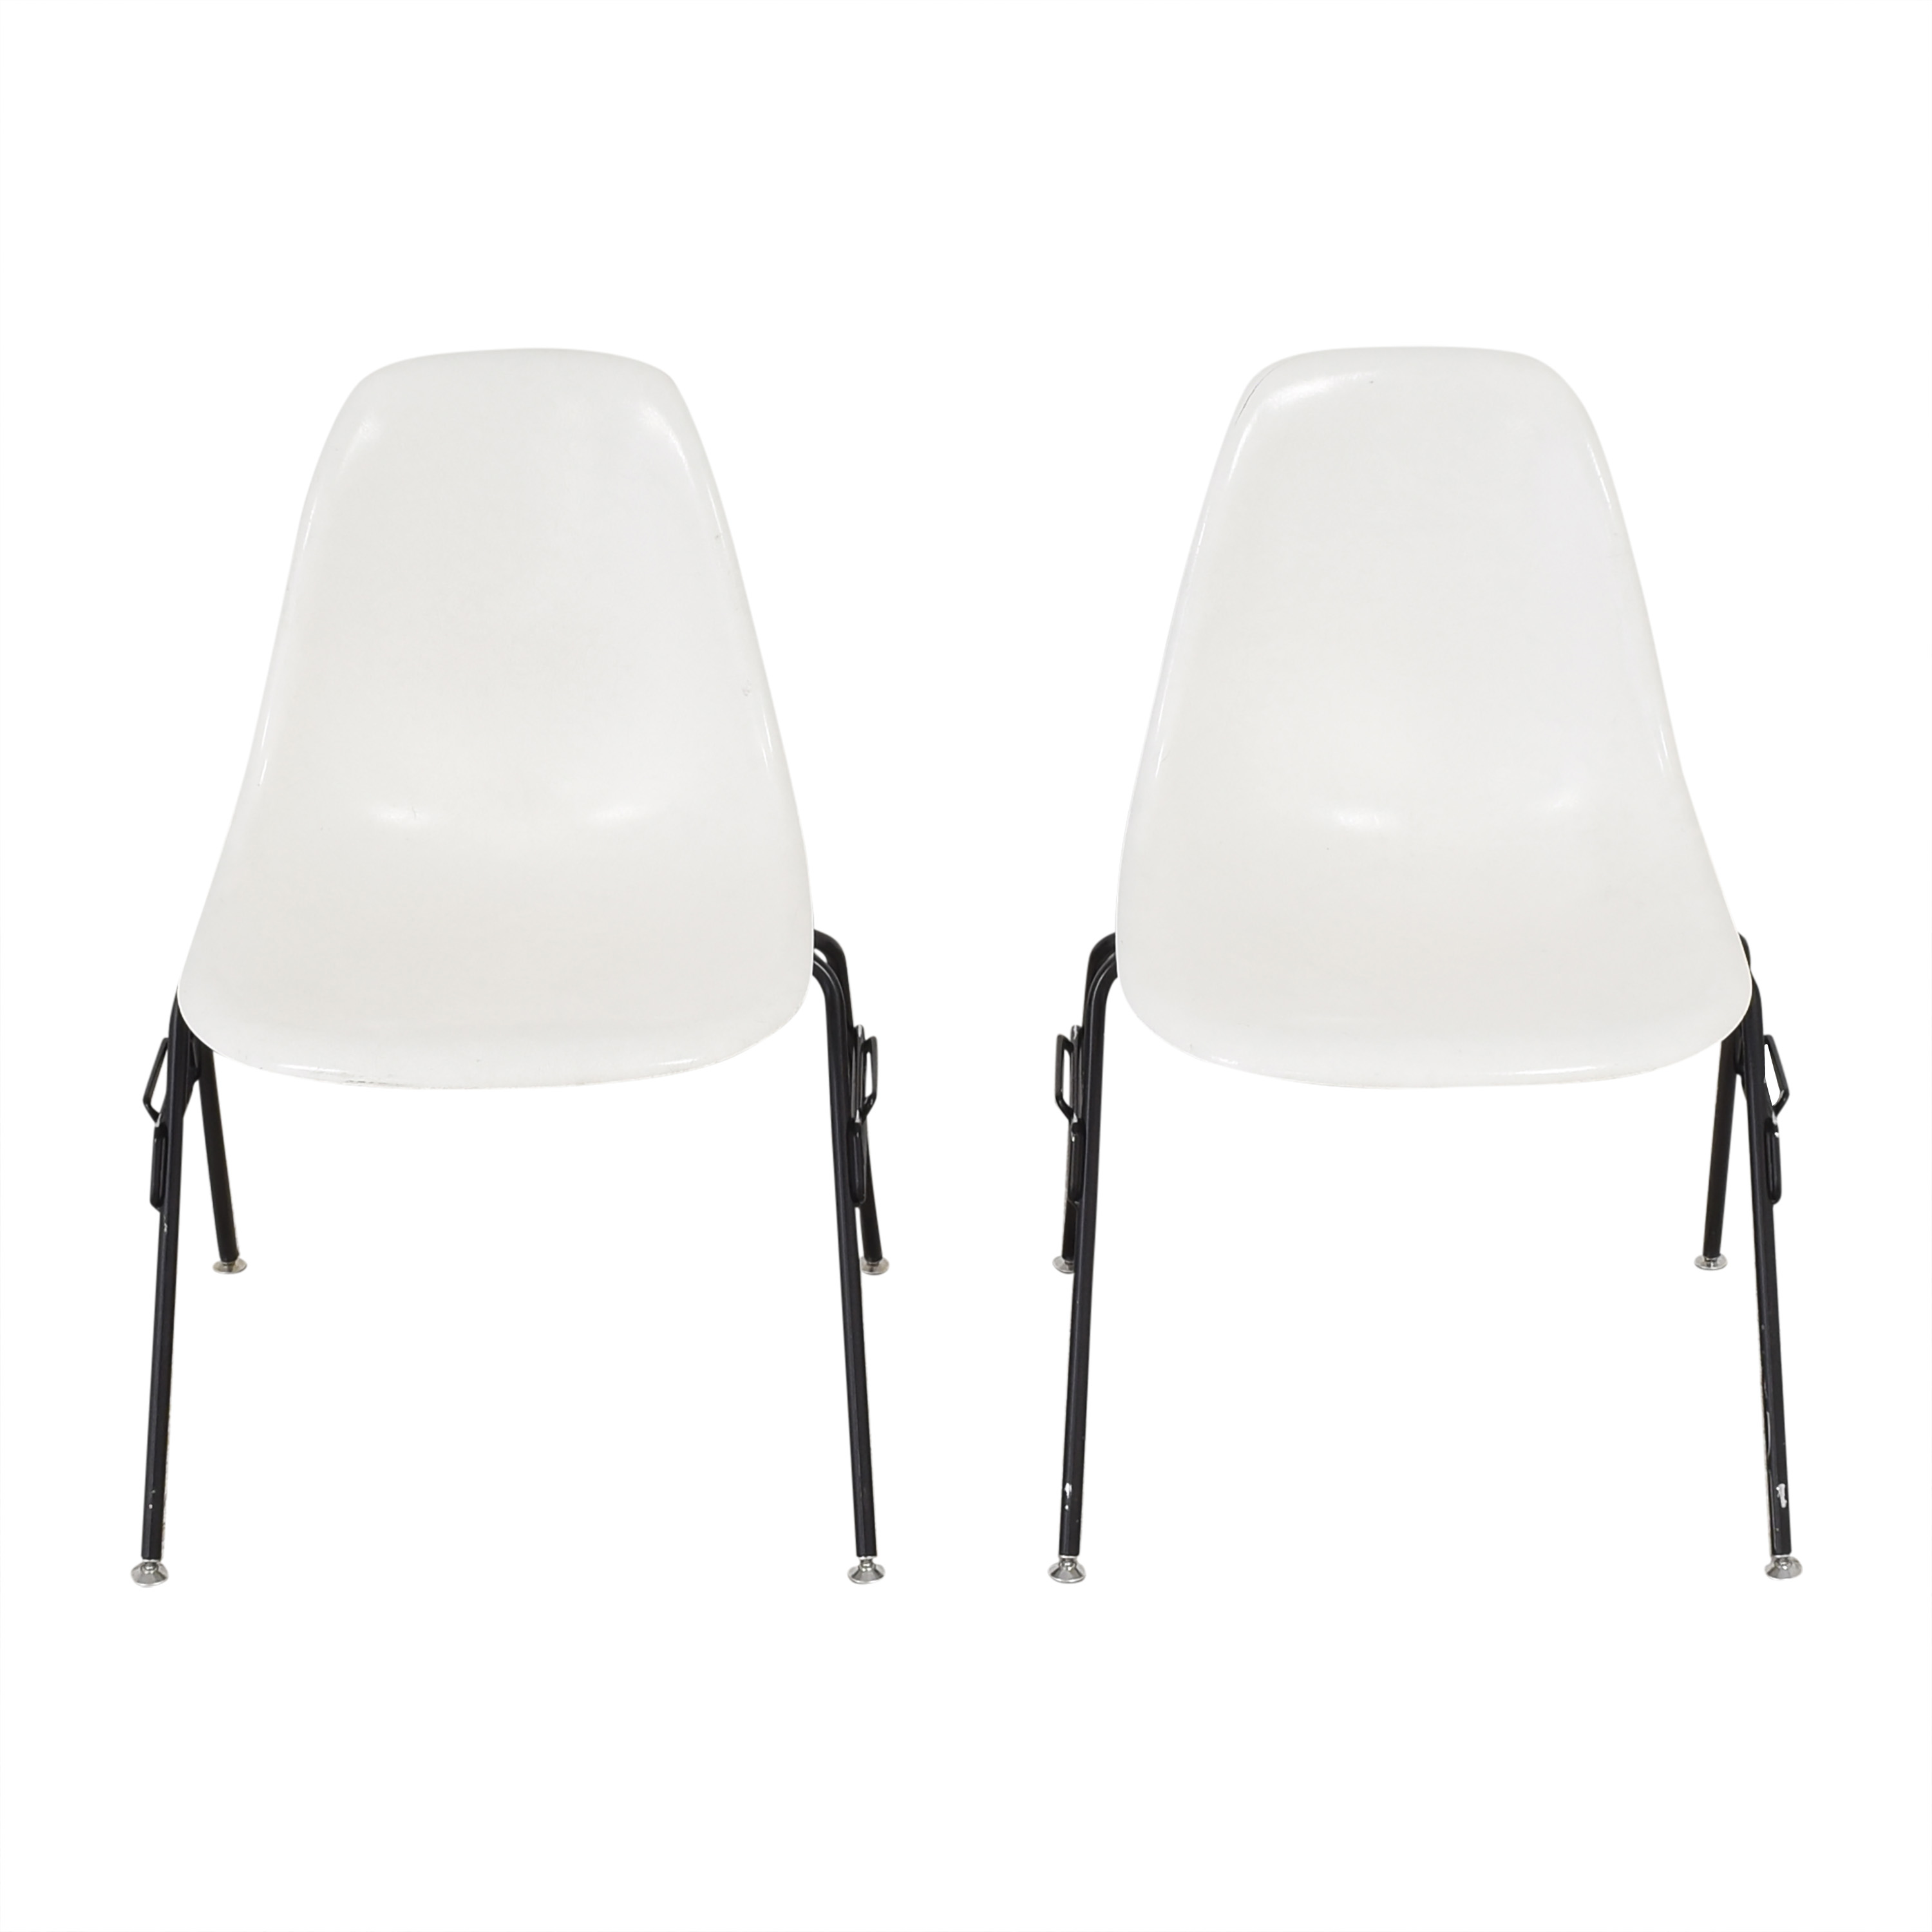 Modernica Modernica Case Study Furniture Side Shell Stacking Chairs pa